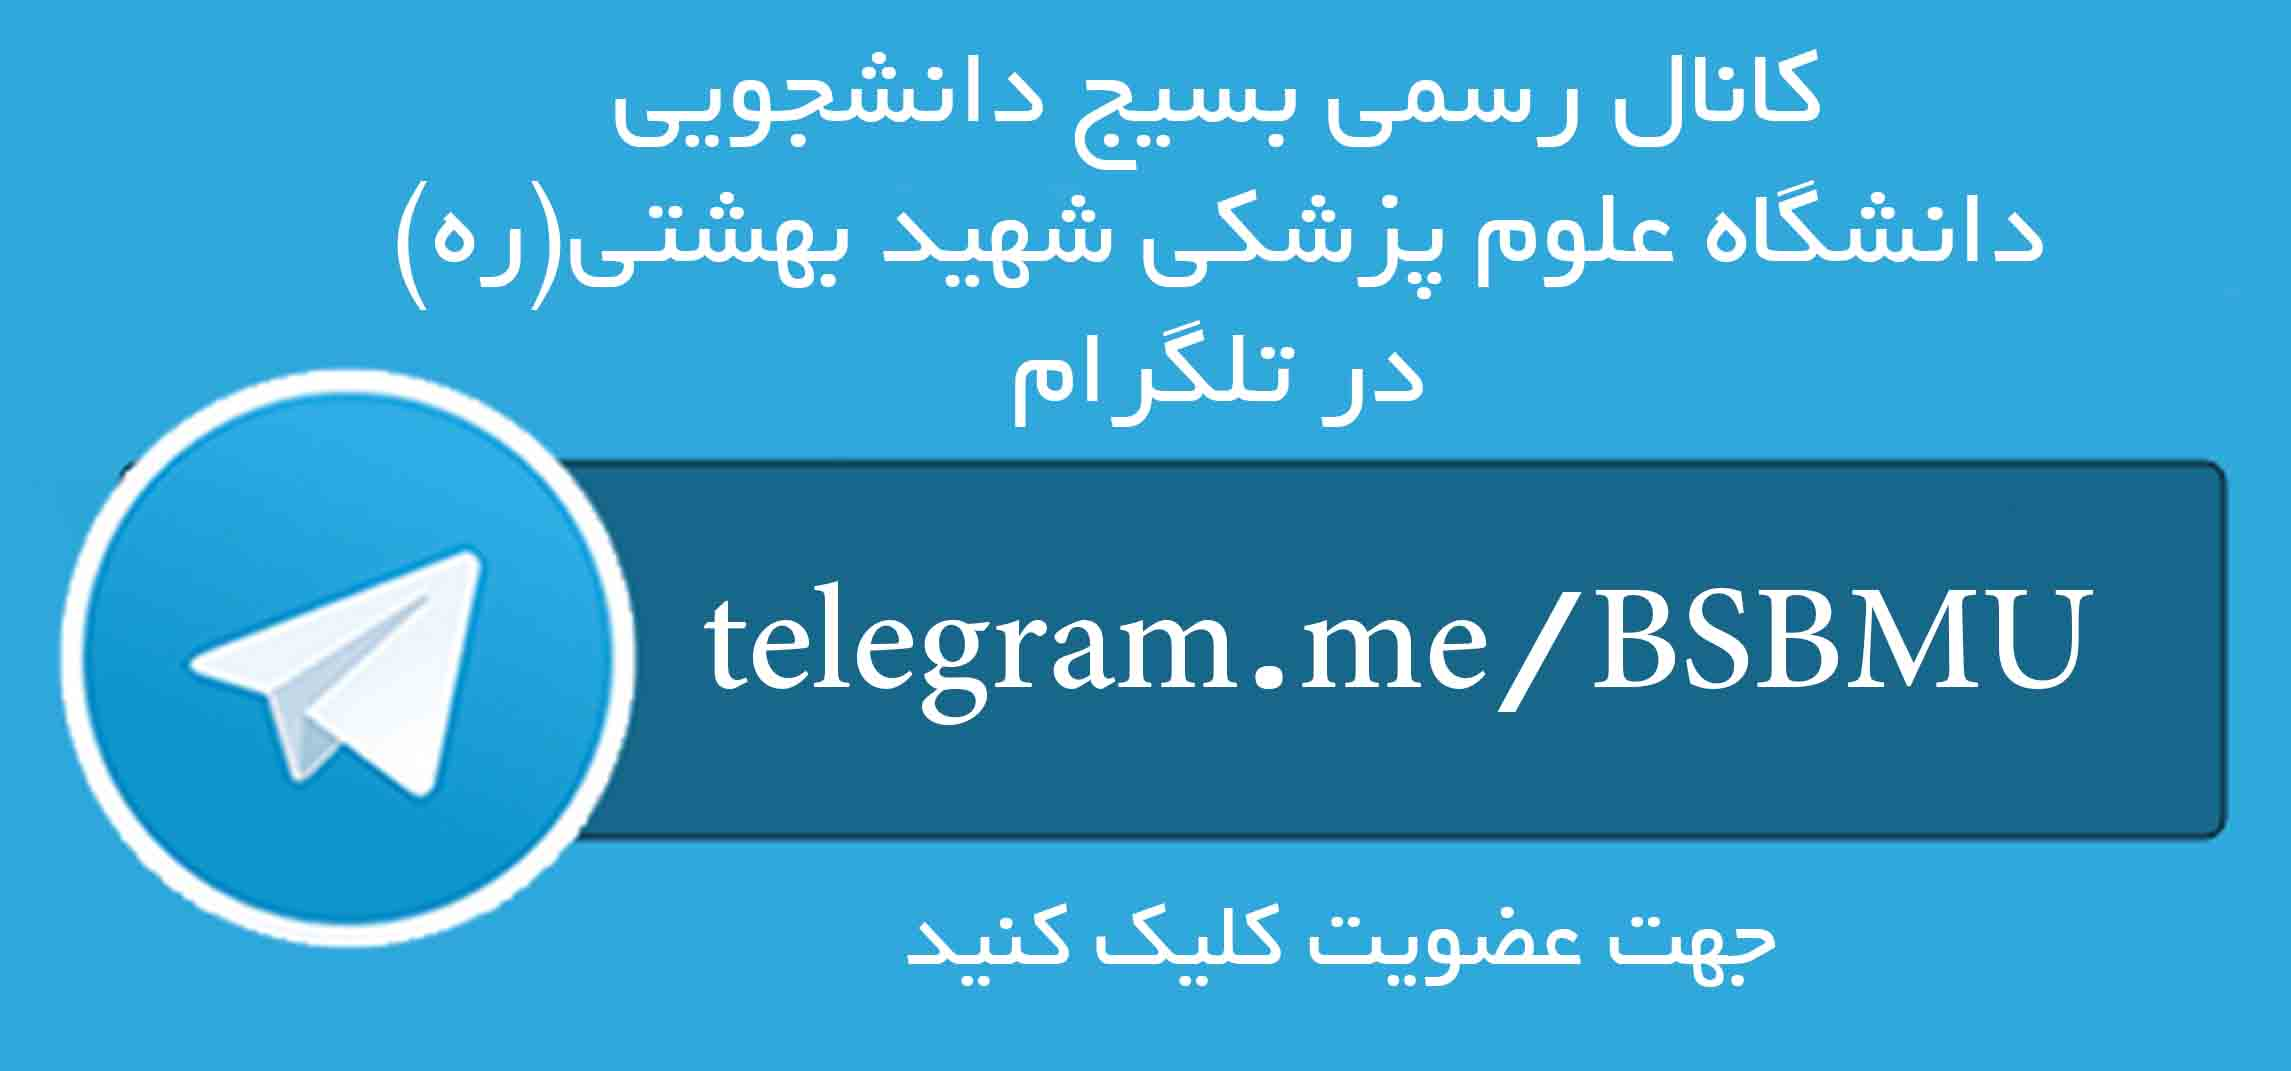 telegram-theme copy